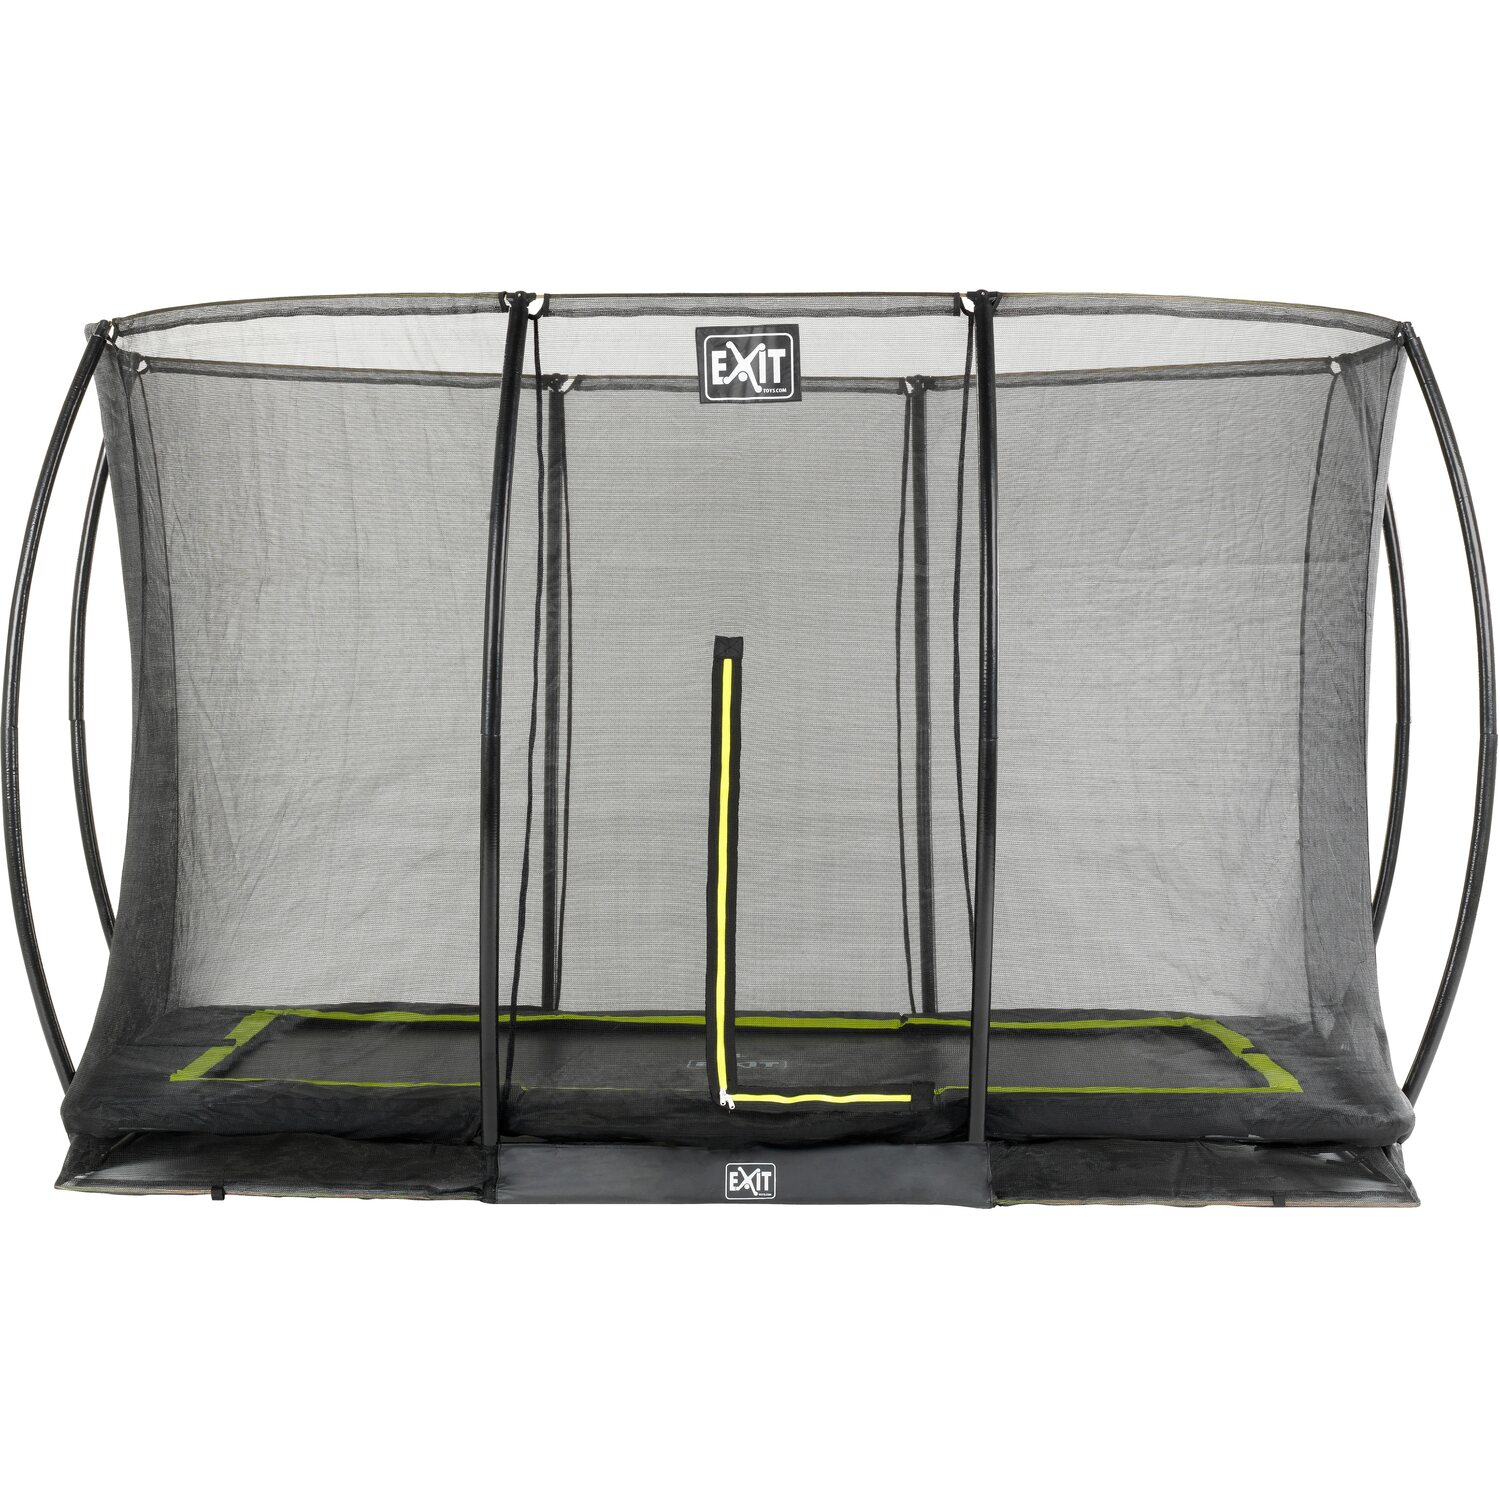 Exit Bodentrampolin Silhouette Eckig 244 cm x 3...